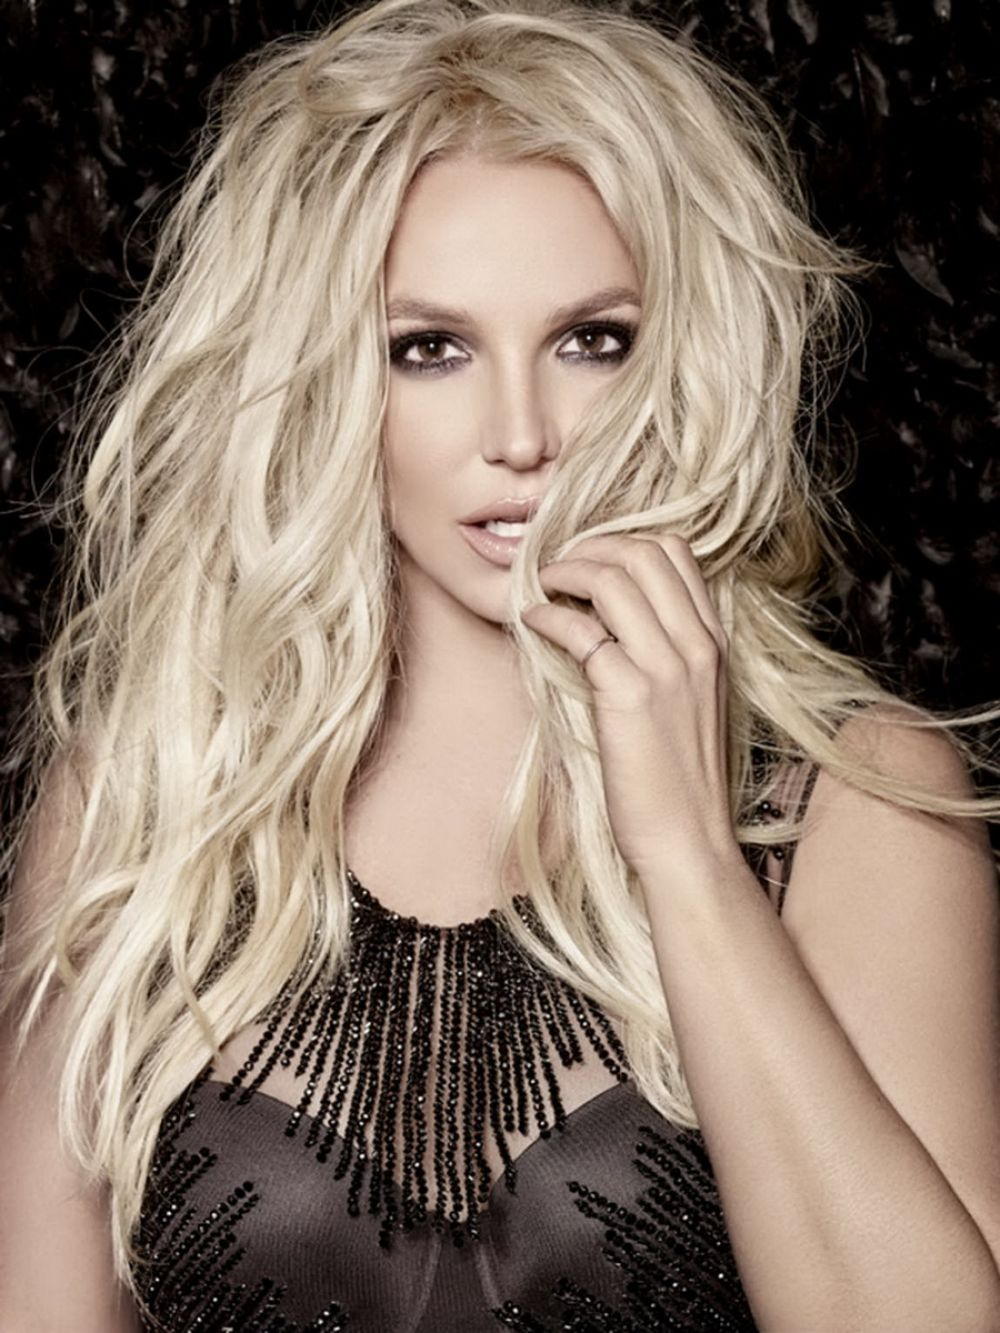 Britney Spears Biopic: Lifetime Moving Forward 'Without ... Britney Spears